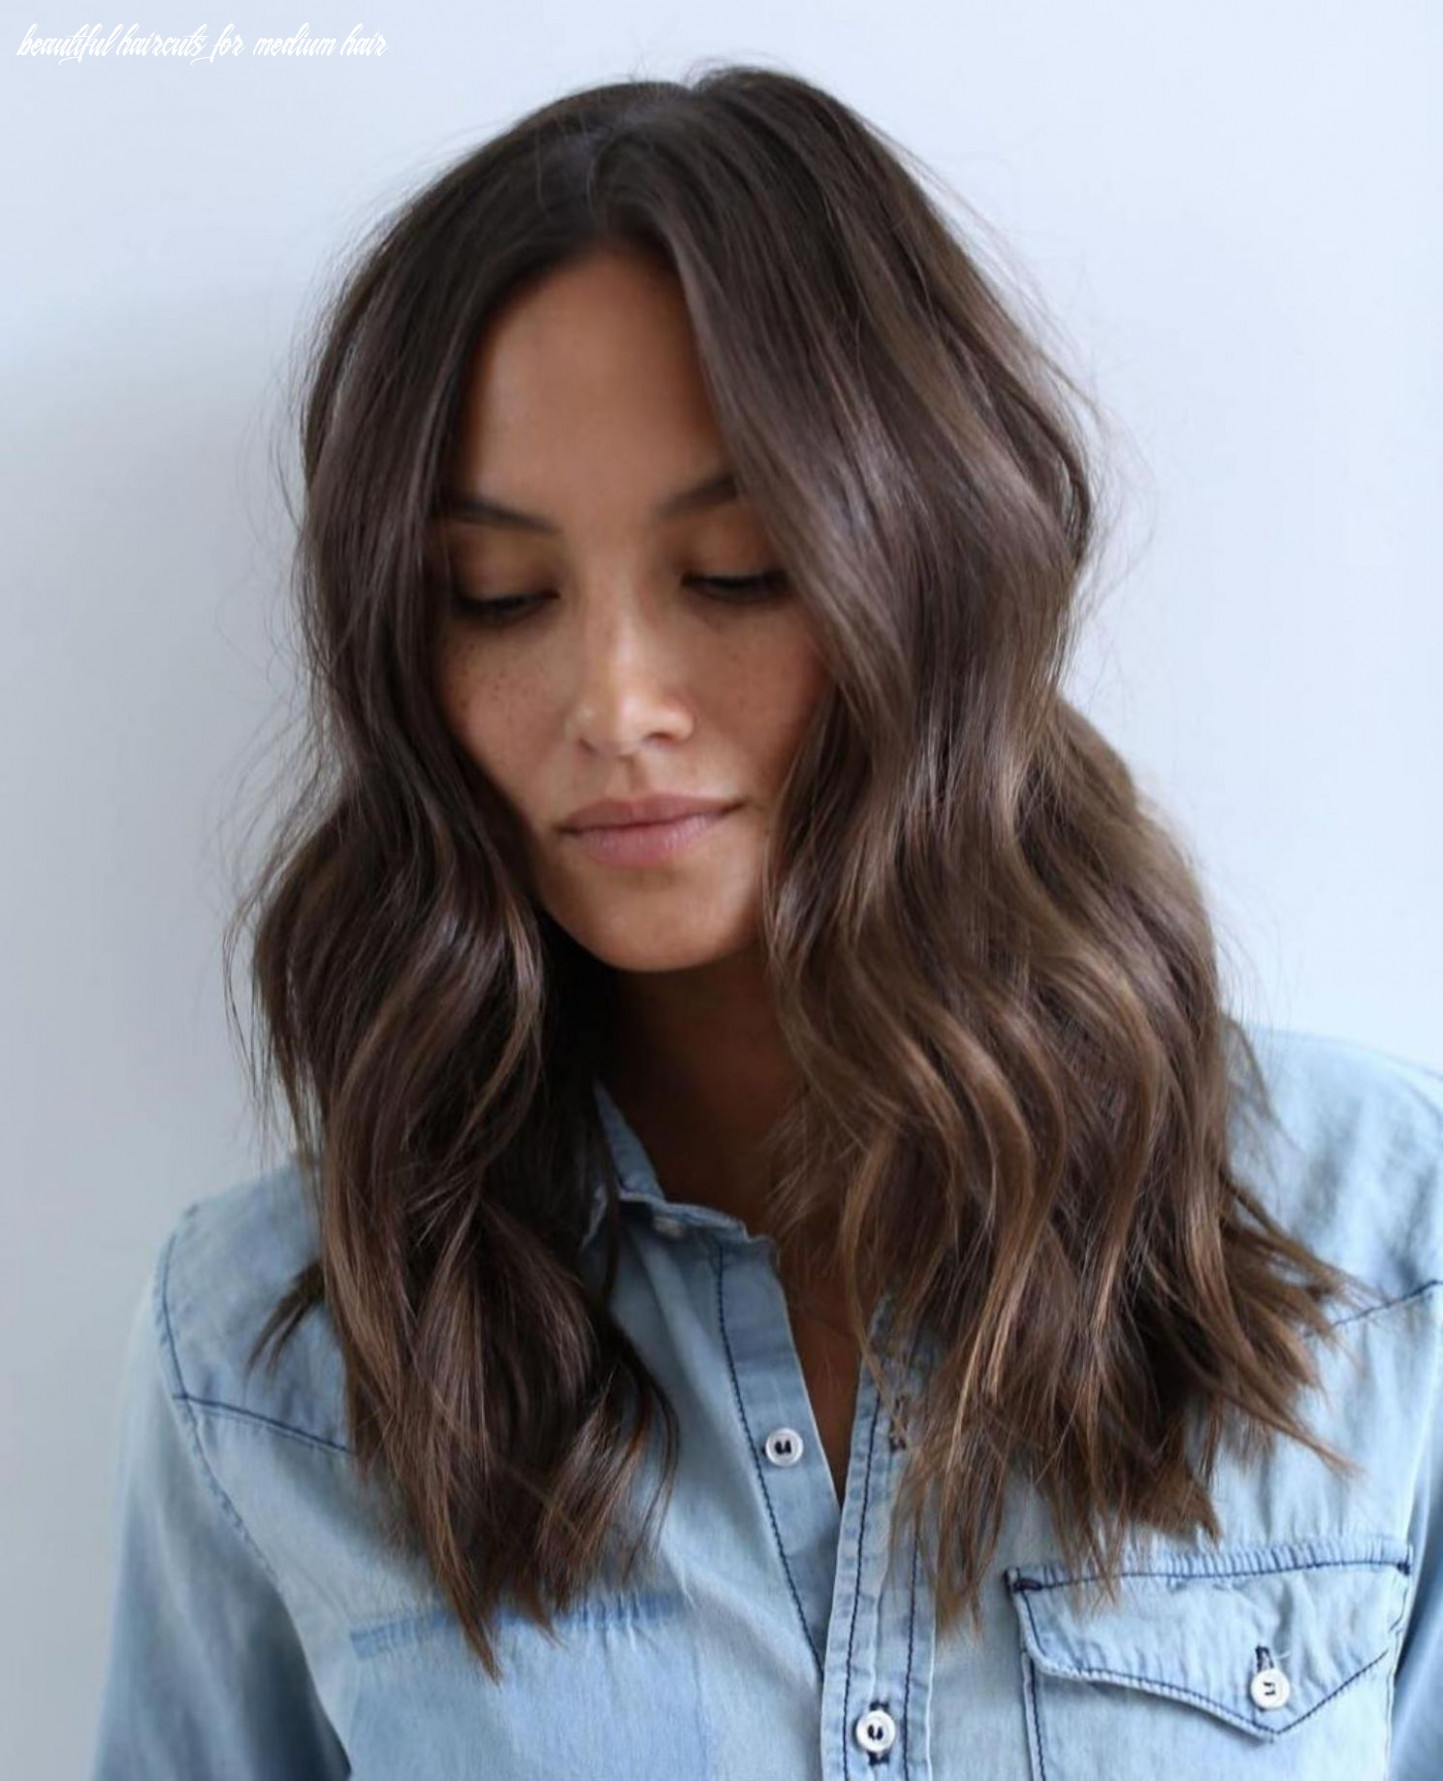 11 chocolate brown hair color ideas for brunettes | hair styles